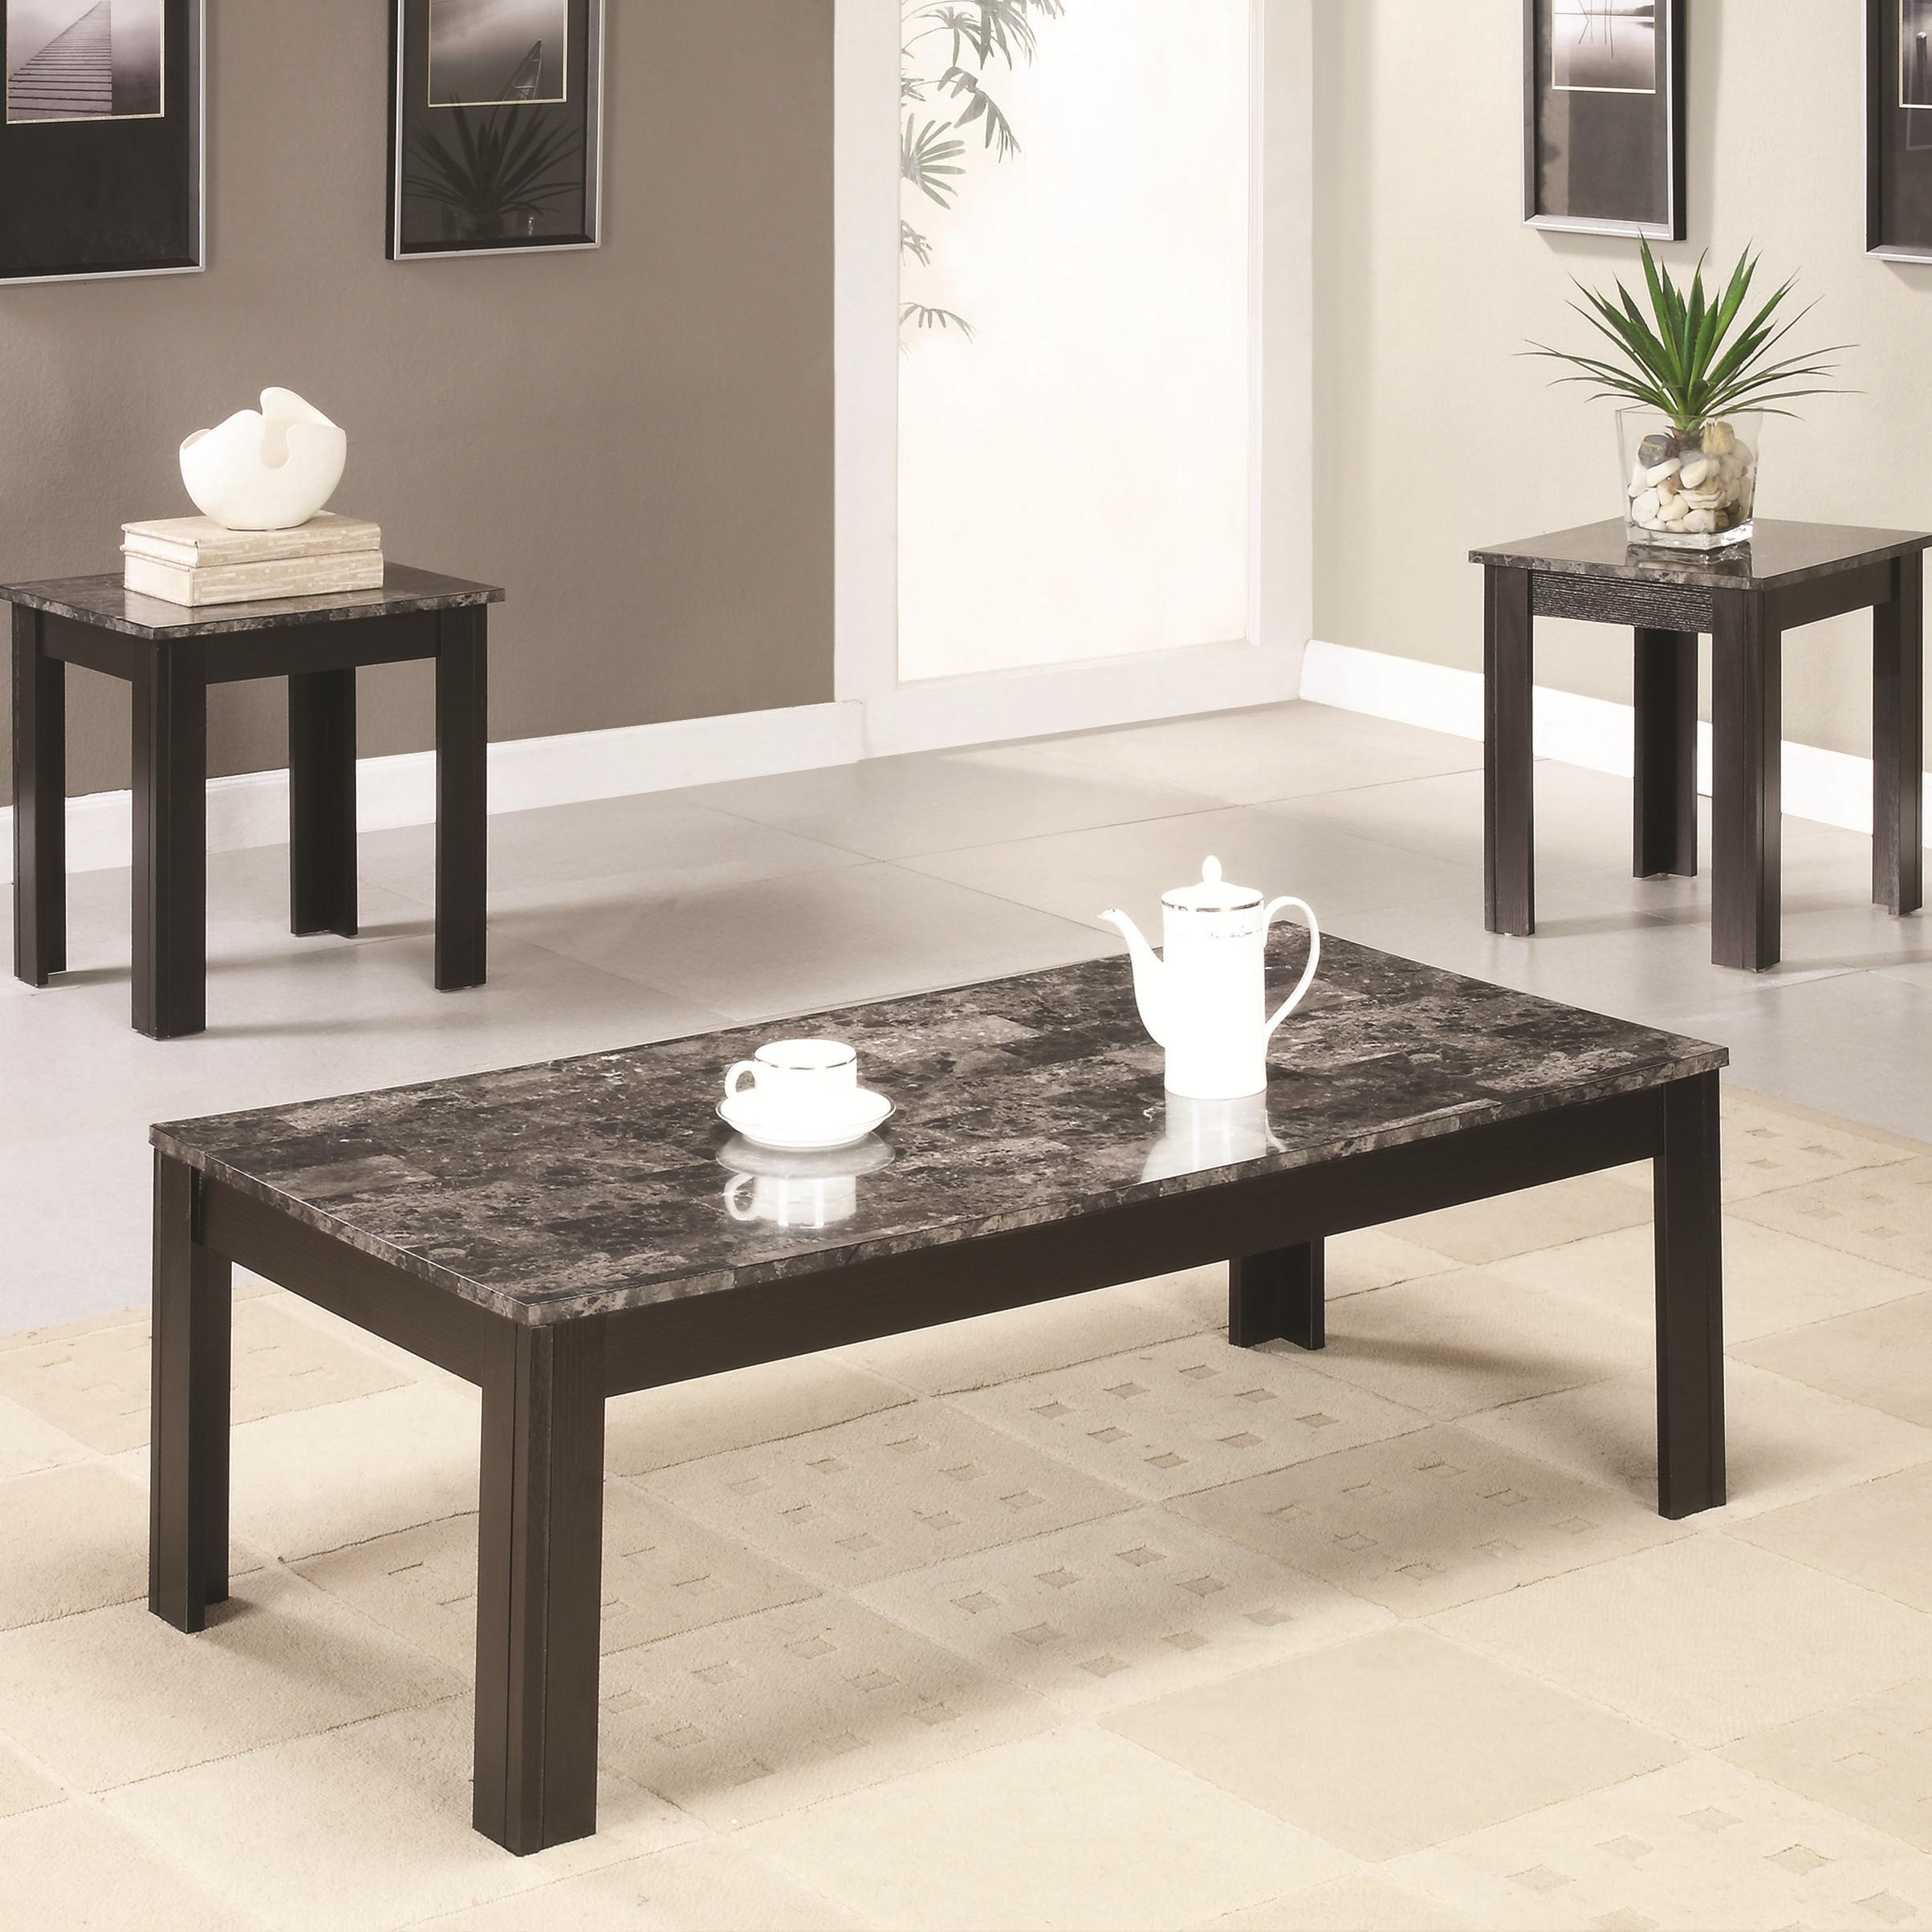 700375 occasional table sets coffee and end table set w/ marble-looking top